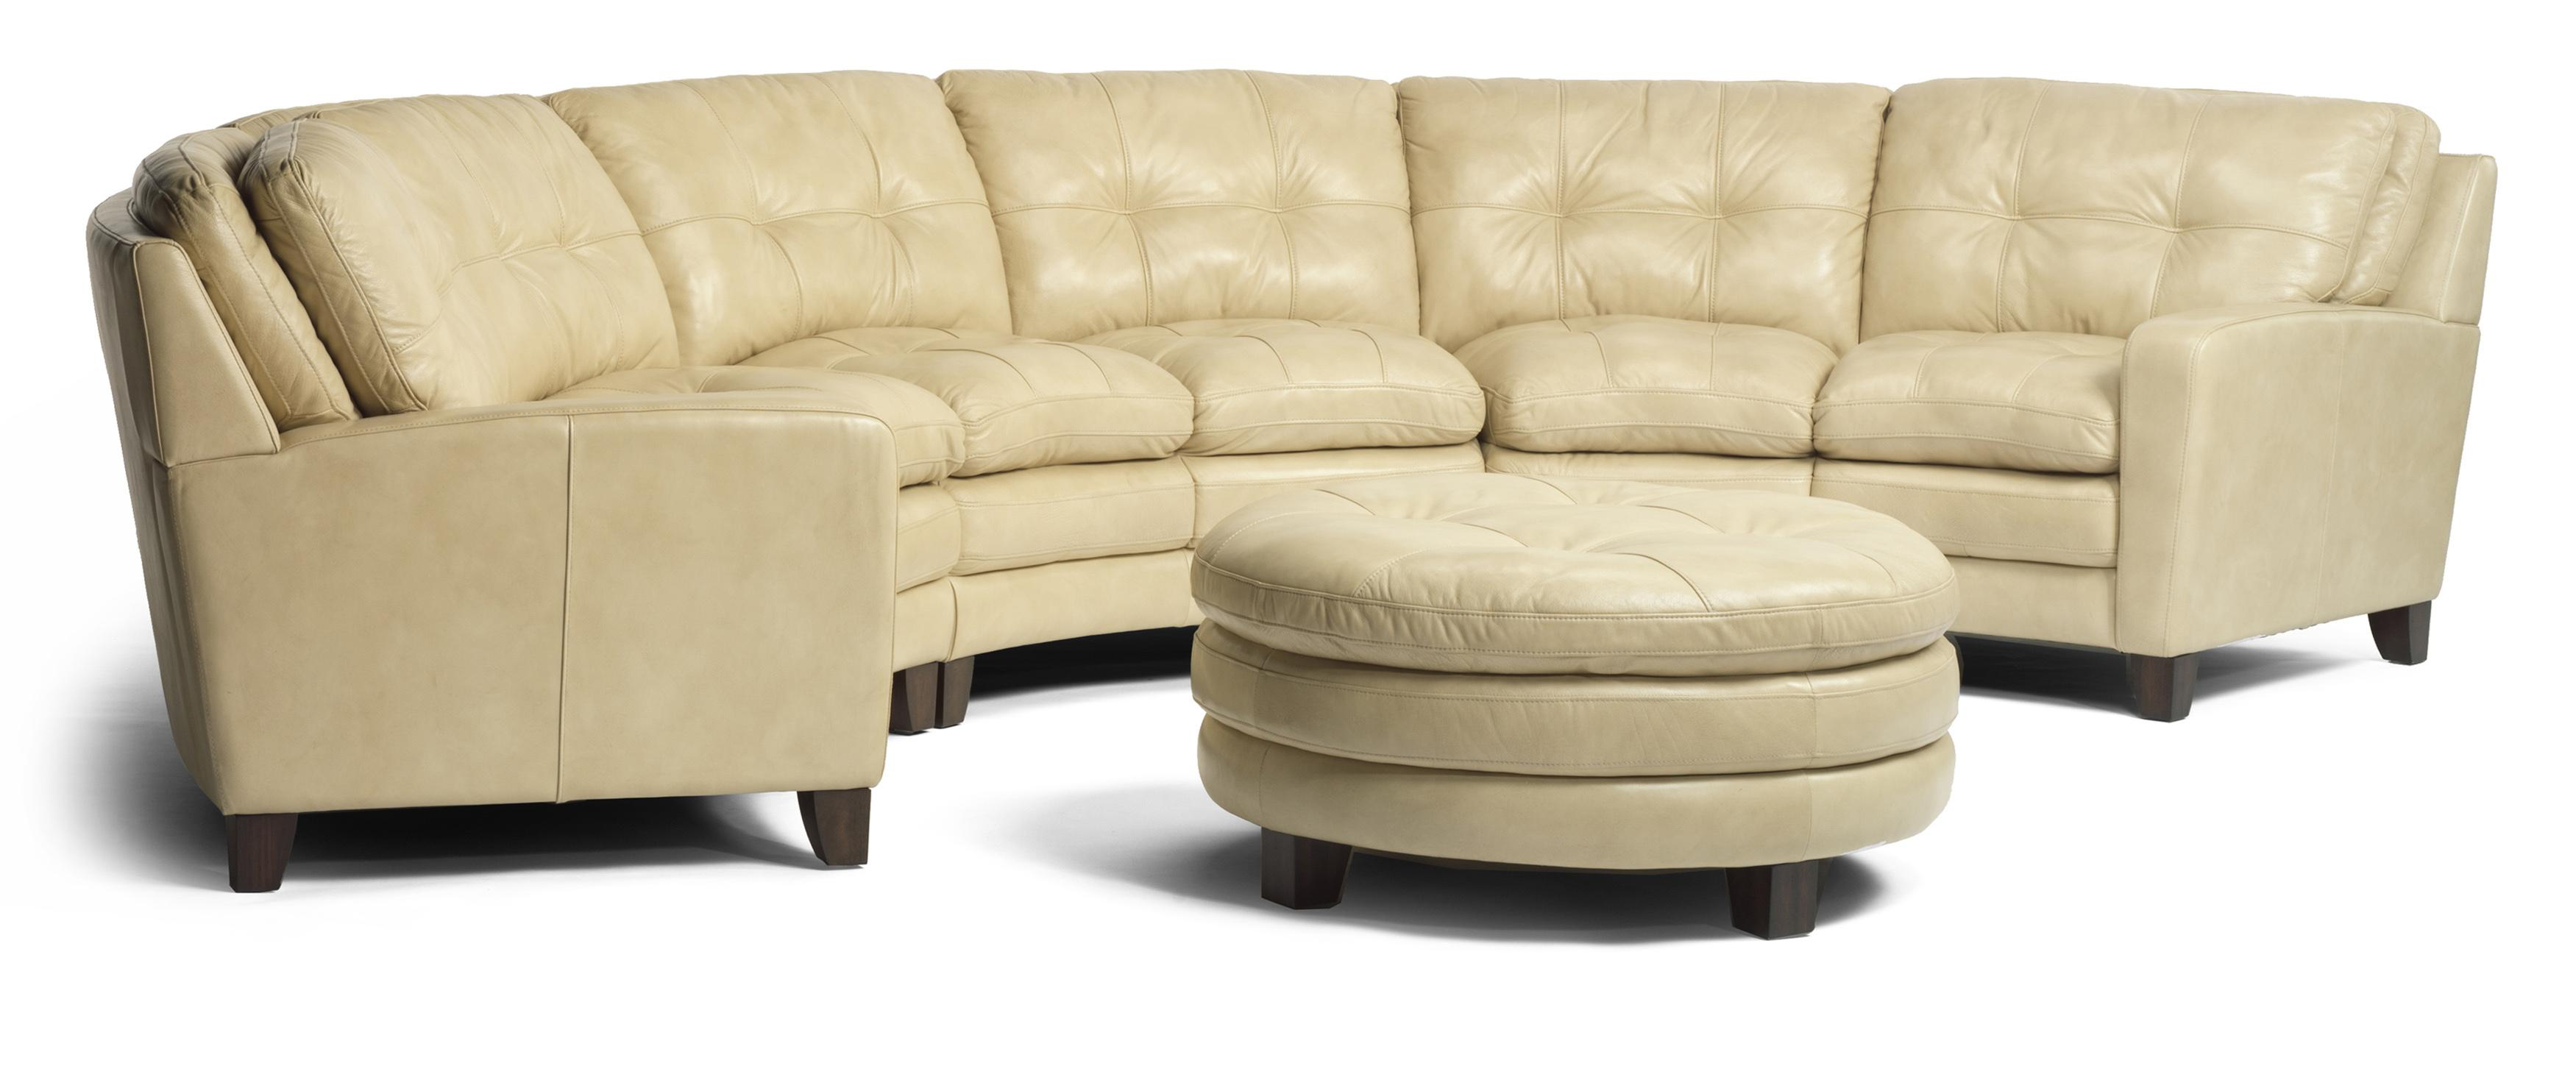 curved today sectional shipping garden home overstock carolina sofa product traditional free